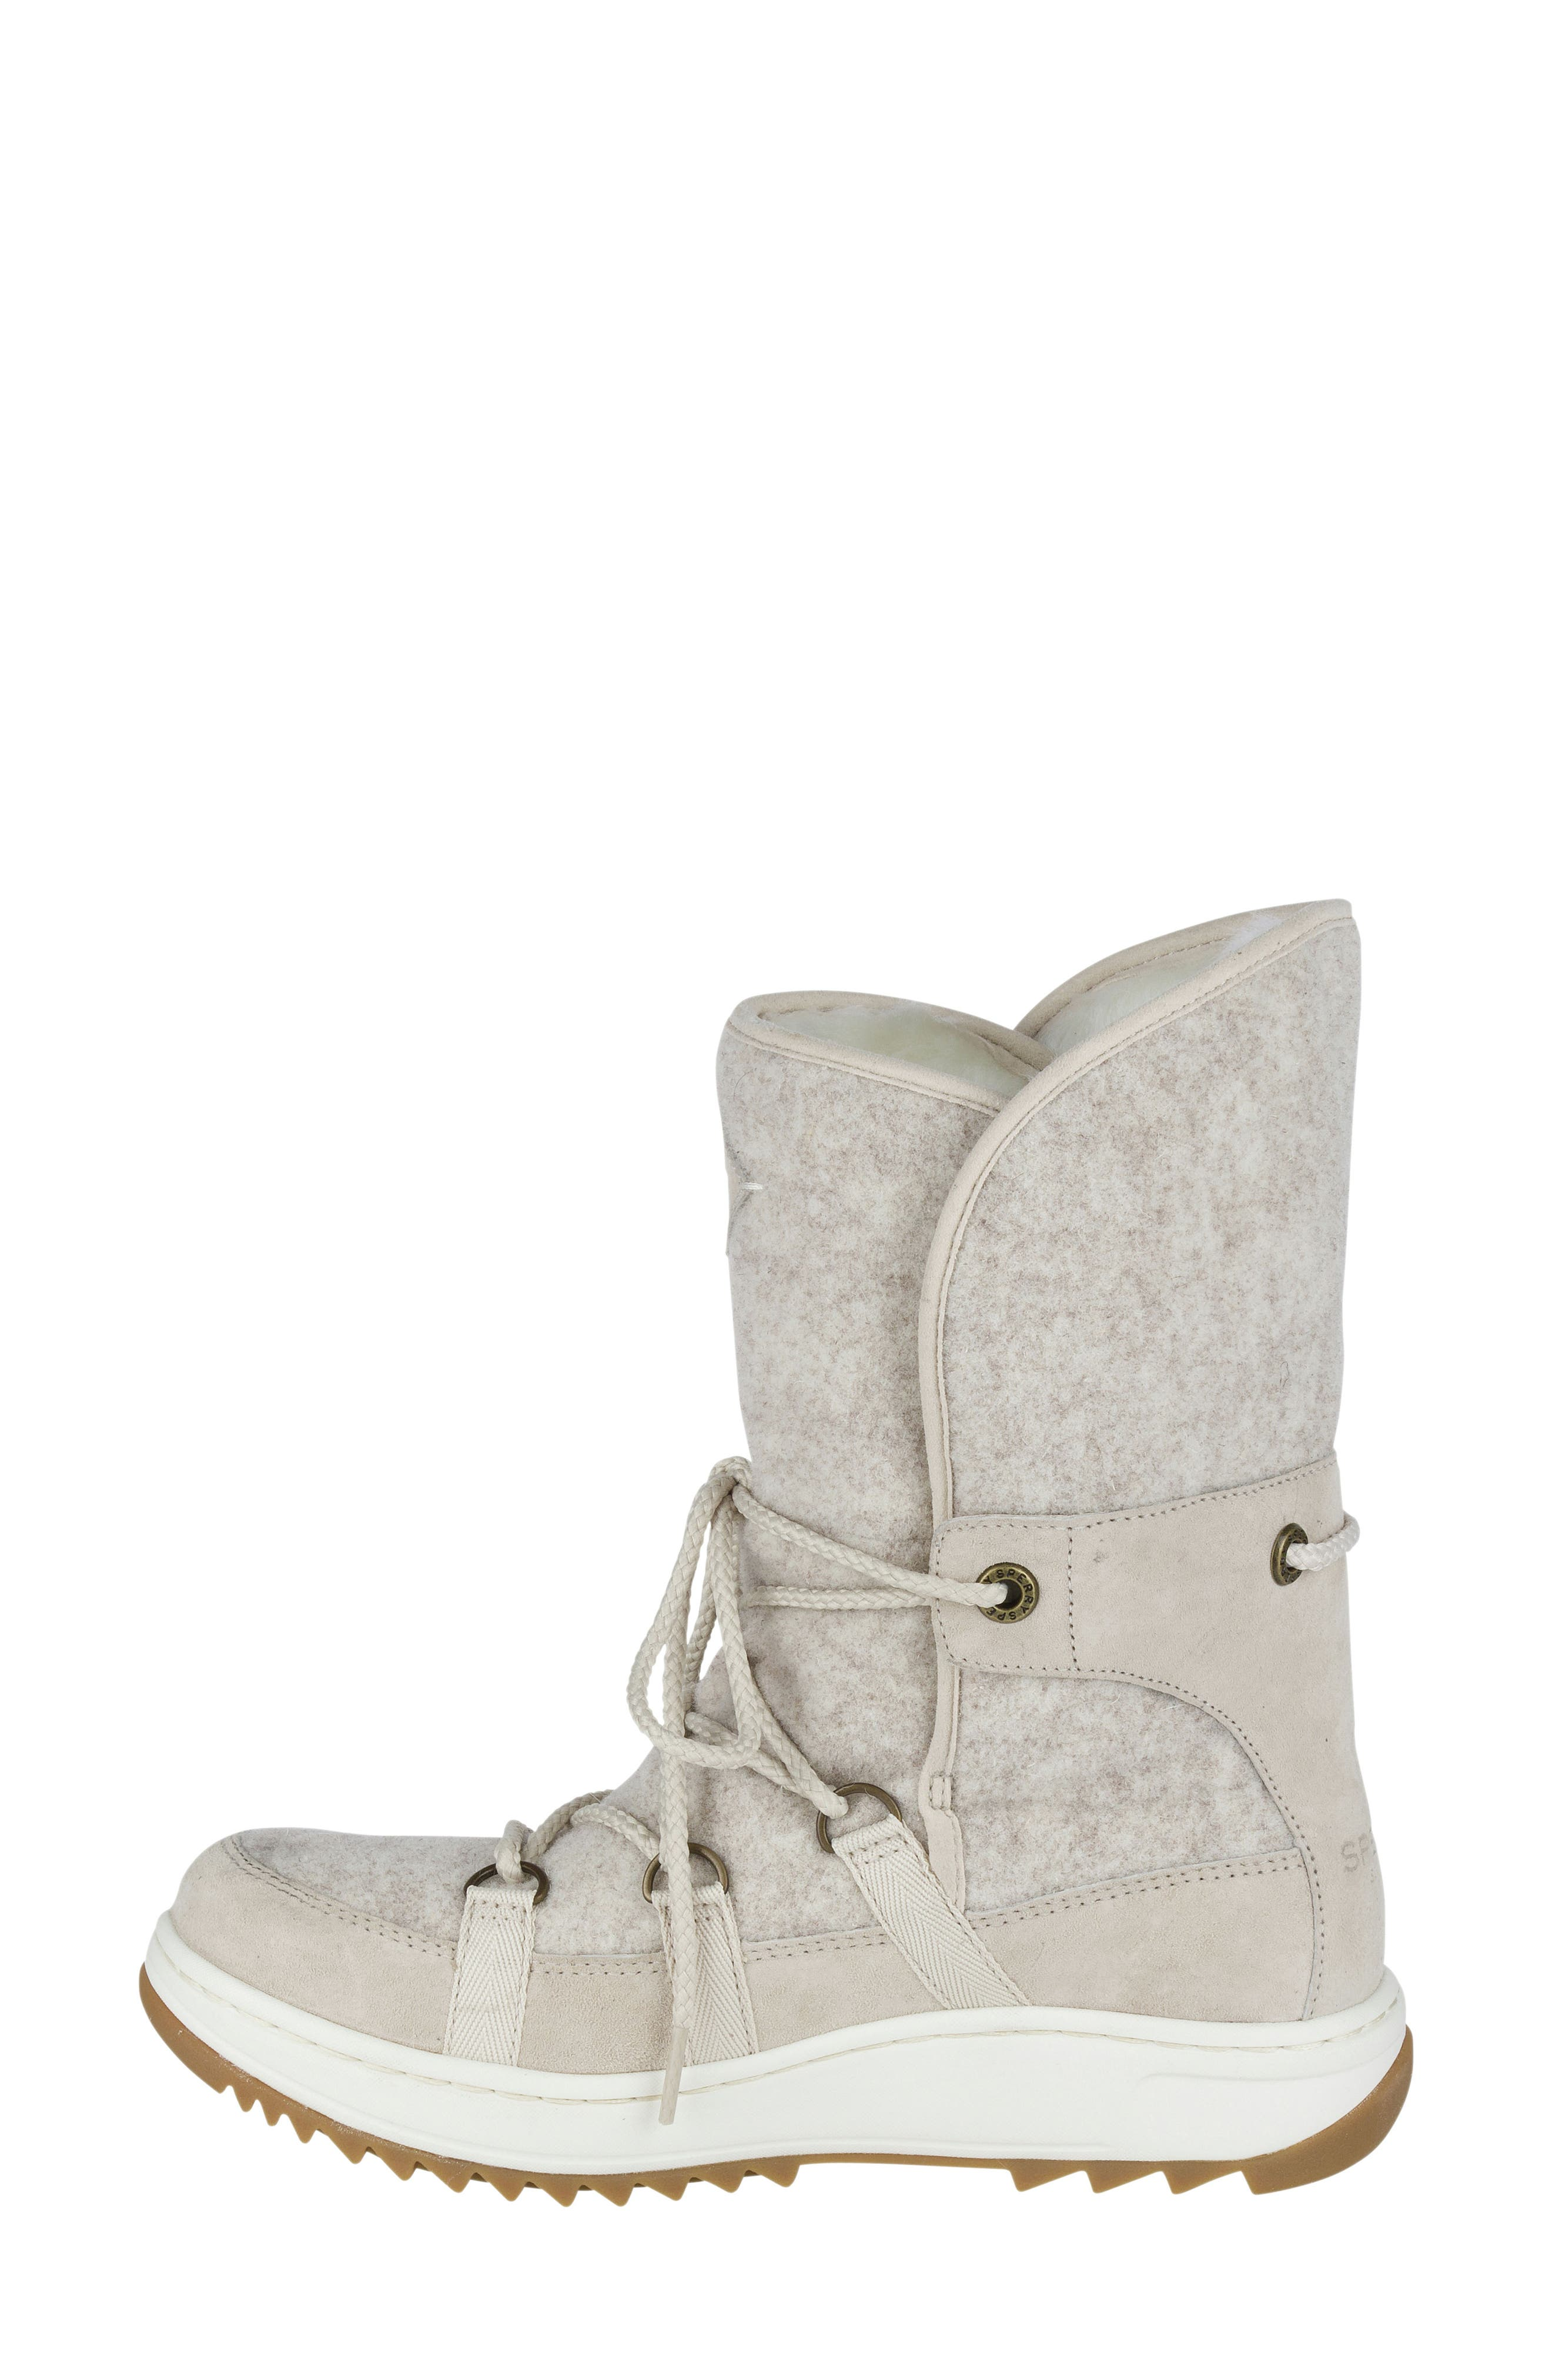 Powder Ice Cap Thinsulate Insulated Water Resistant Boot,                             Alternate thumbnail 4, color,                             Ivory Suede